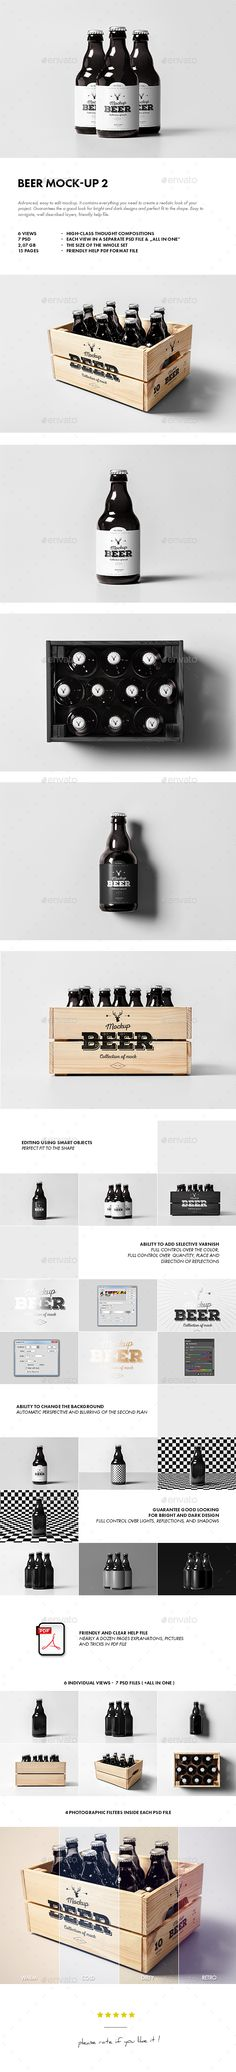 Beer Mock-up. Download here: http://graphicriver.net/item/beer-mockup-2/15390920?ref=ksioks